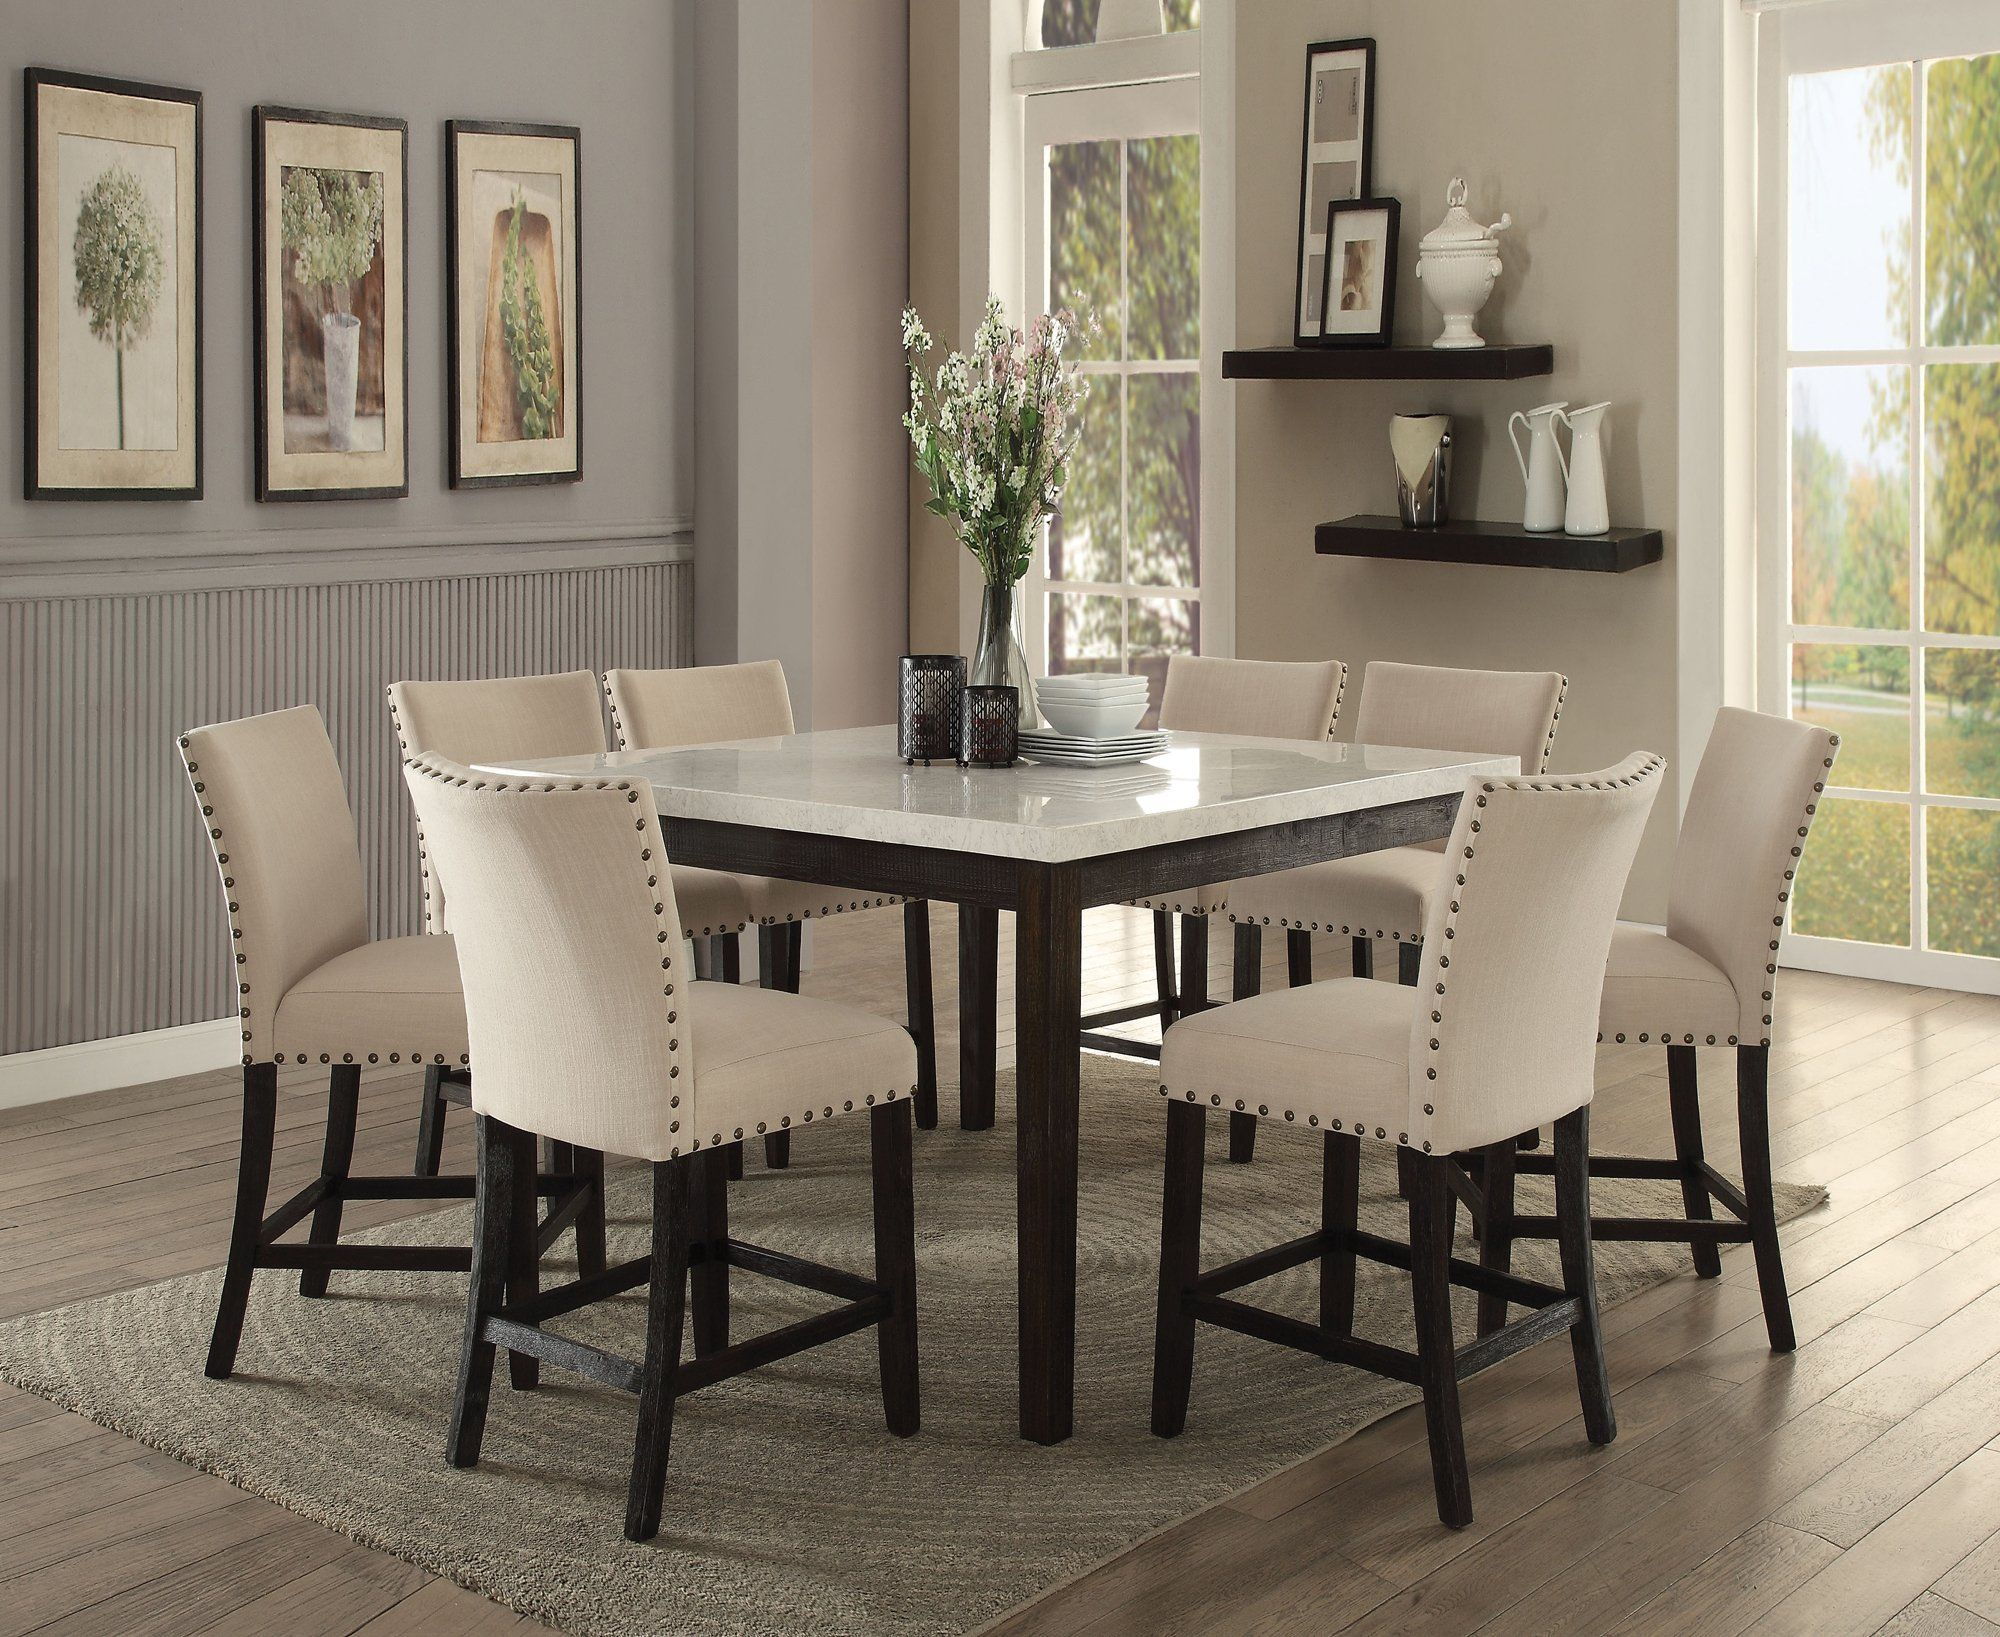 Acme 72855 Nolan White Faux Marble Top 9 Piece Counter Height Dining Set Whiterounddiningtable Counter Height Dining Sets Dining Room Sets Dining Table Marble